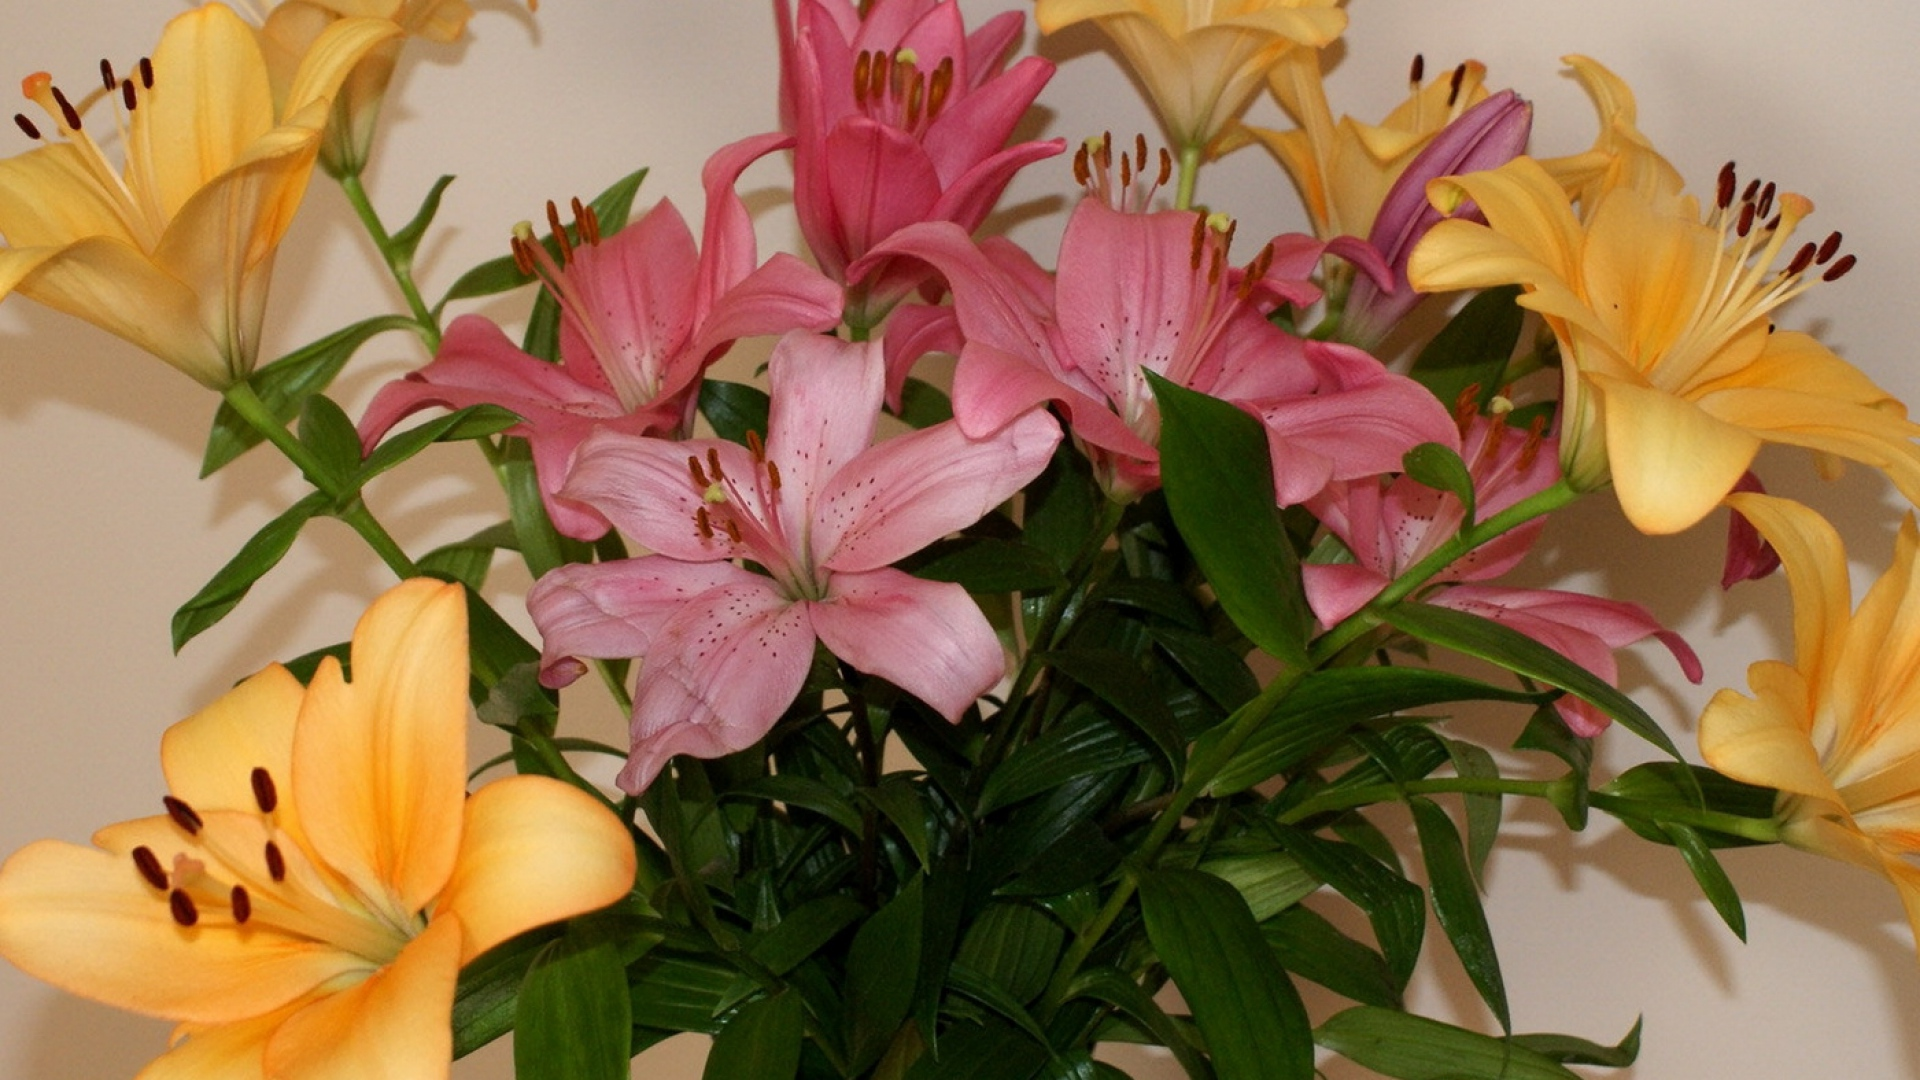 Download wallpaper 1920x1080 lily bouquet different stamens vase lily bouquet different izmirmasajfo Image collections